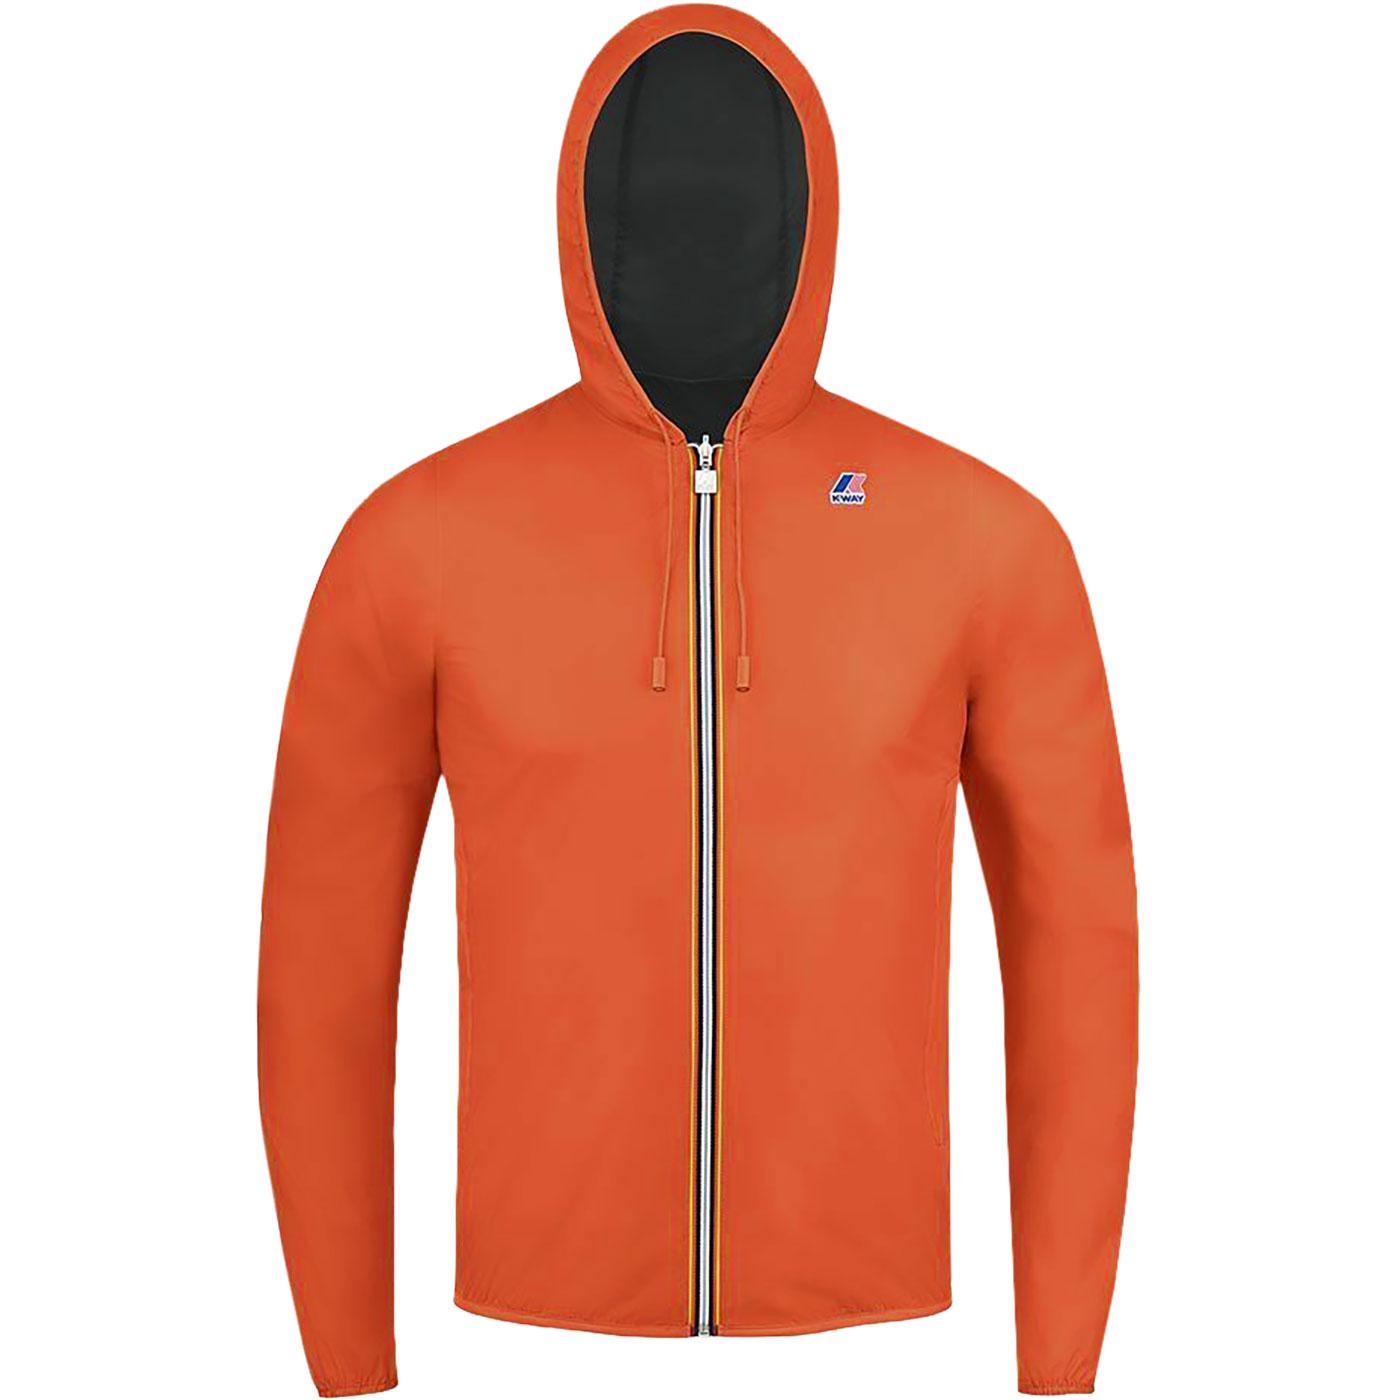 Jacques Plus K-WAY Reversible Anorak Jacket (O)